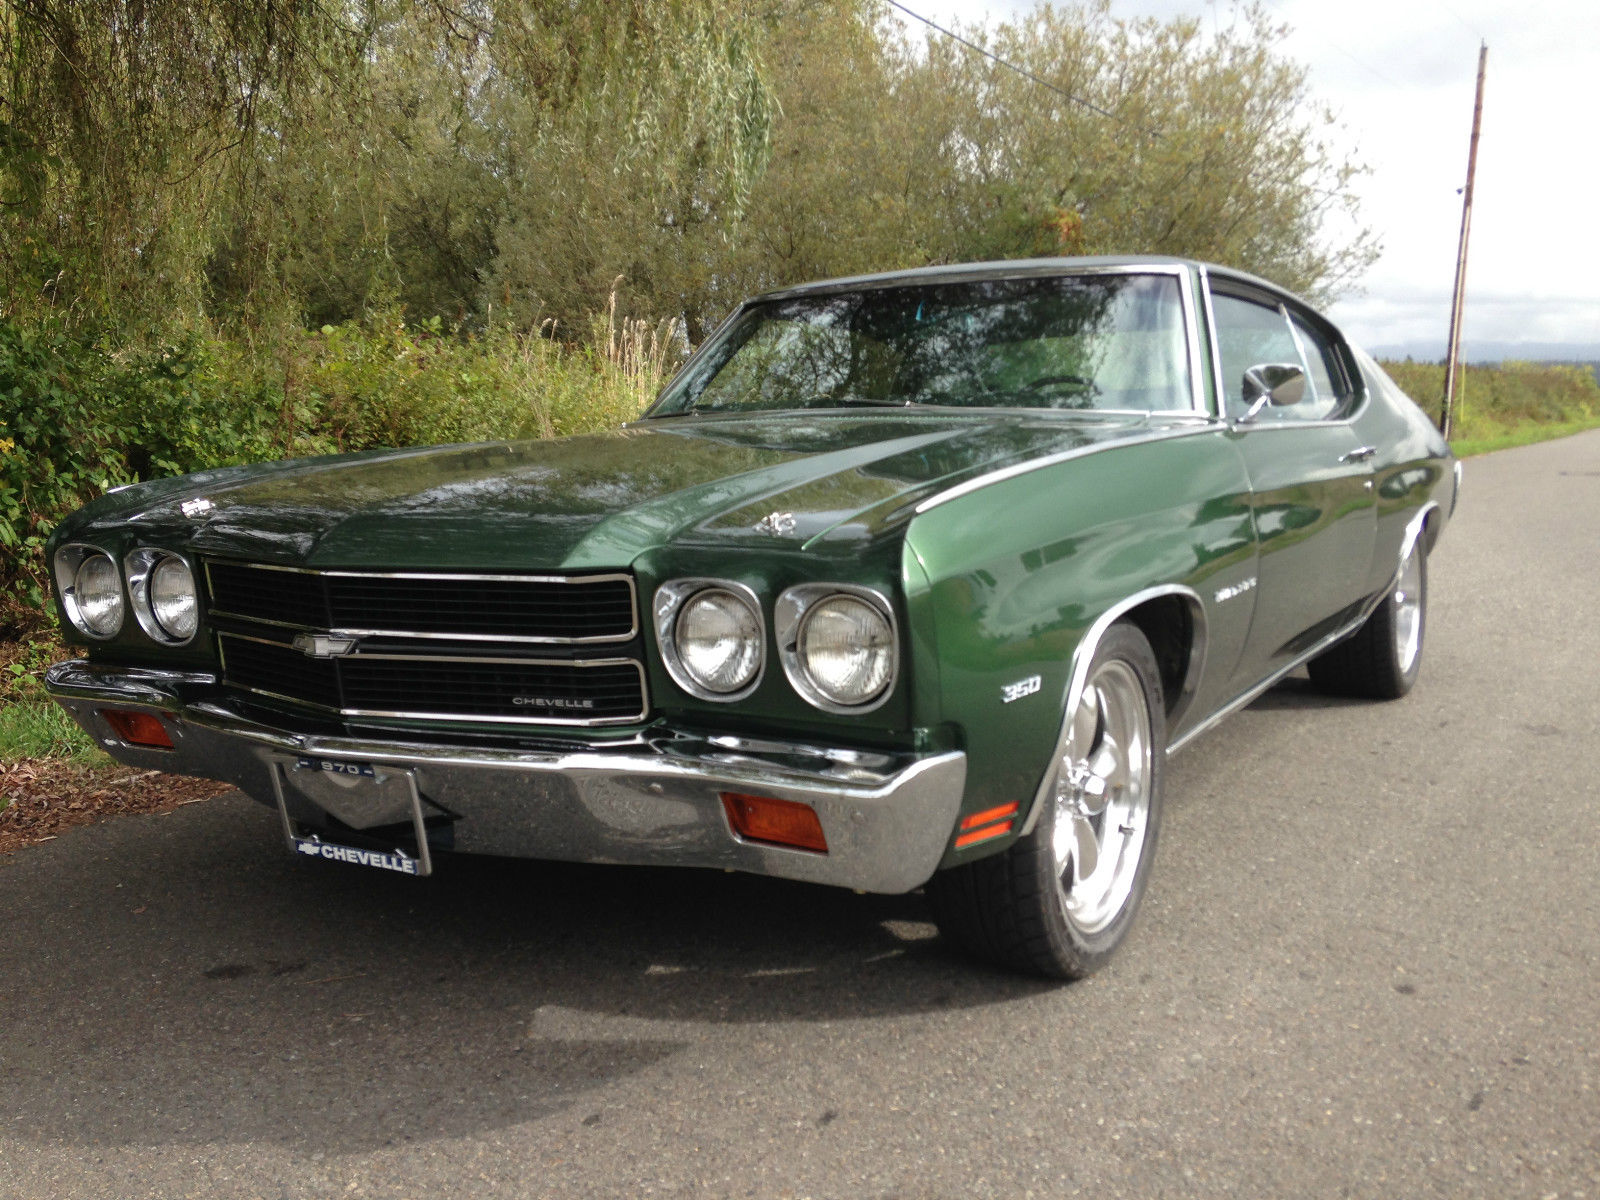 Chevelle Archives   Project Cars For Sale 1970 Chevrolet Malibu